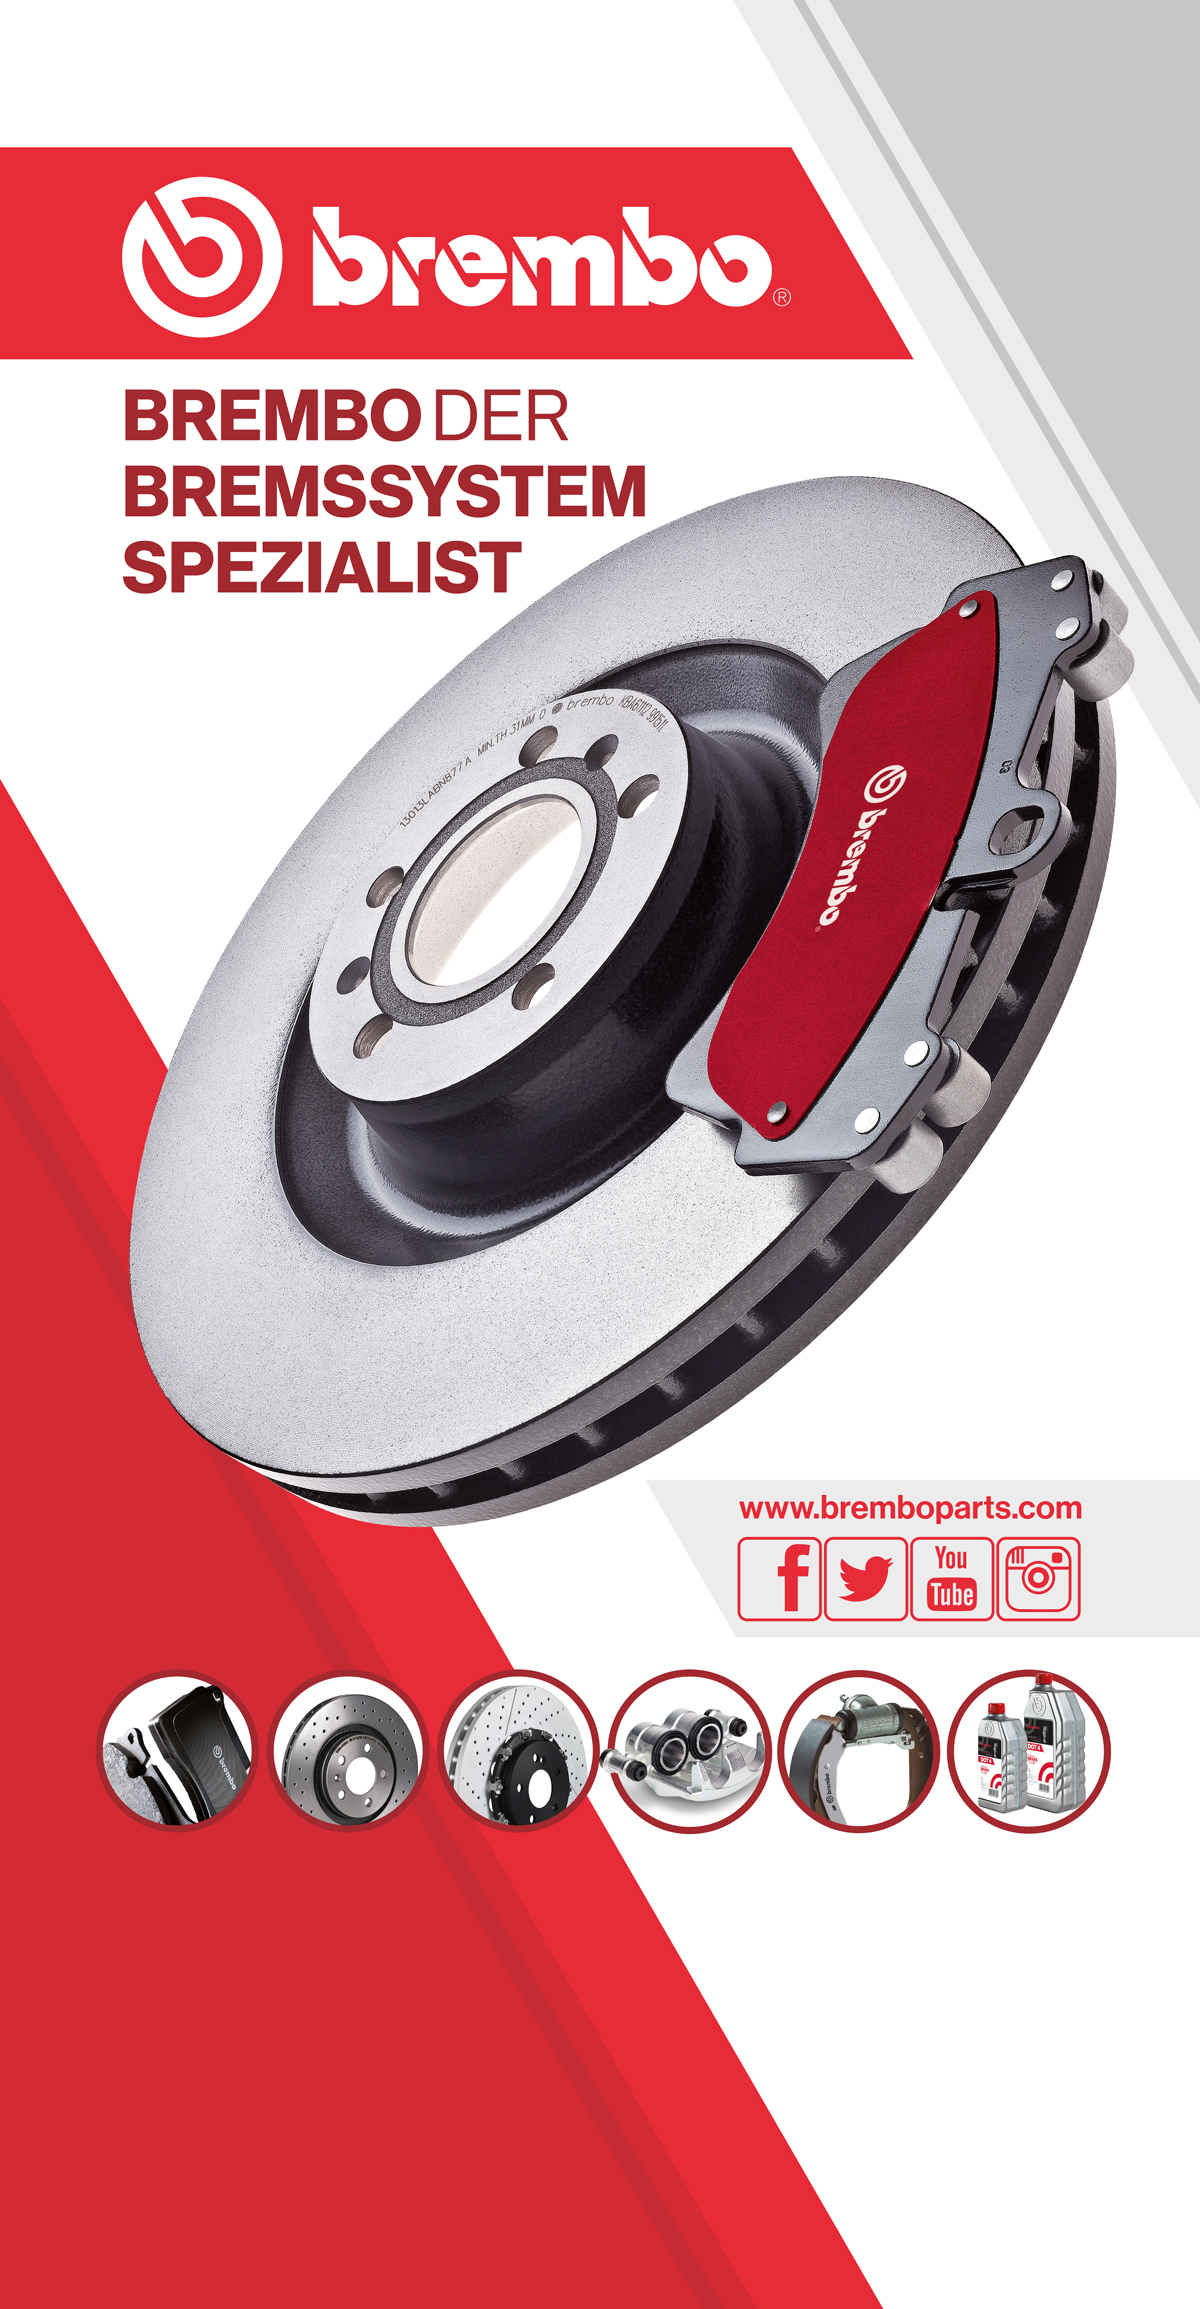 BREMBO - PANNELLO SHOW ROOM GERMANIA